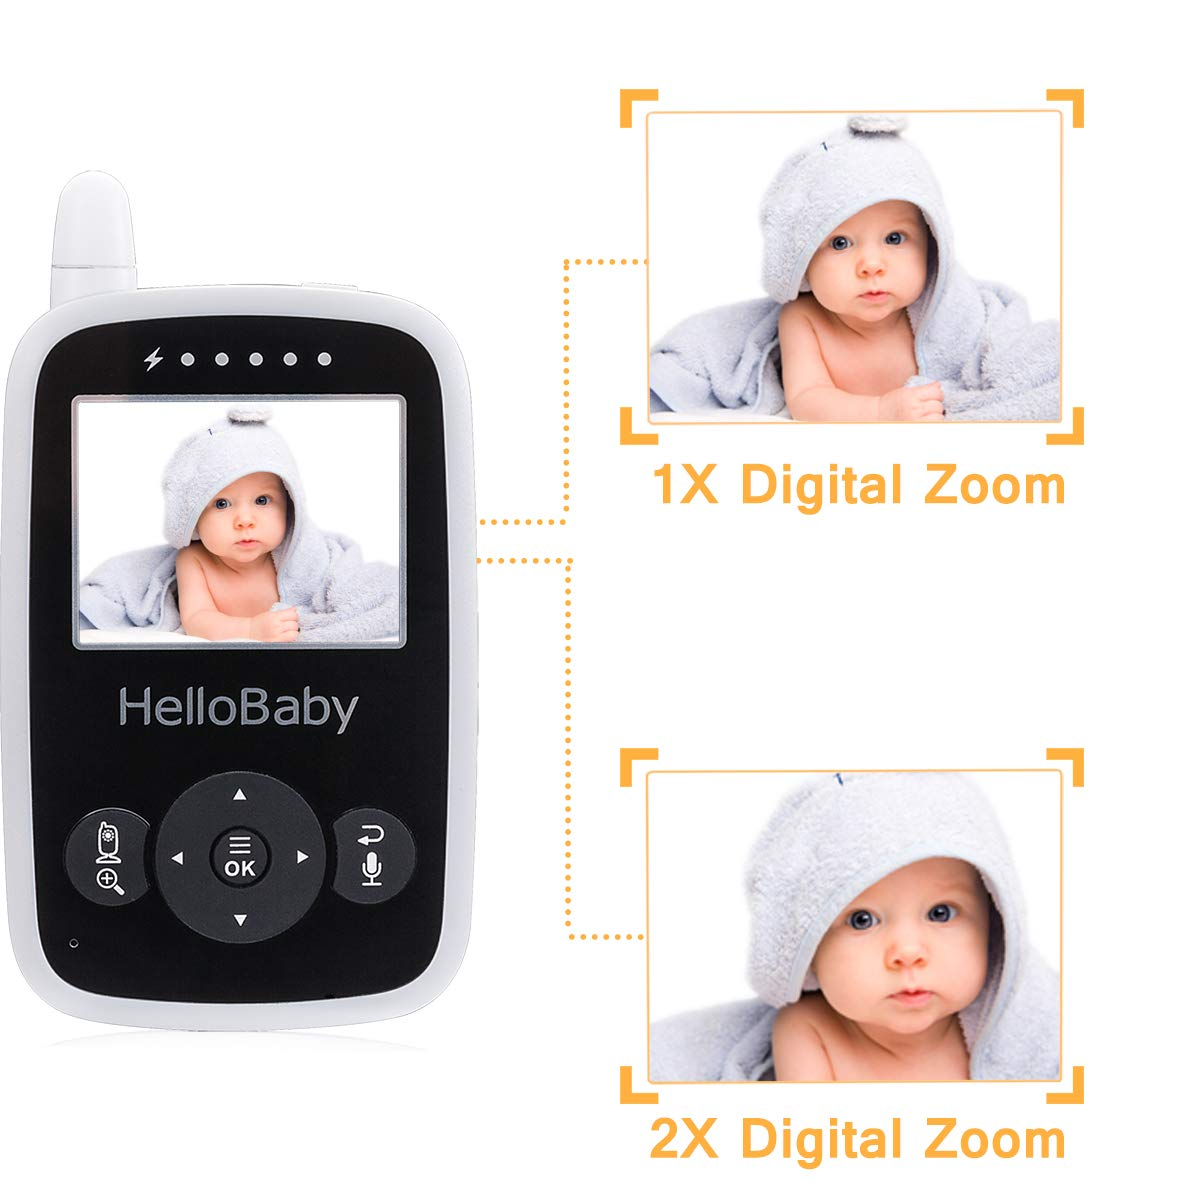 HelloBaby Video Baby Monitor with Camera - Infrared Night Vision, Two-Way Talk Back, Screen, Temperature Detection, Lullabies,Long Range, Private Data Protection and High Capacity Battery by HelloBaby (Image #6)